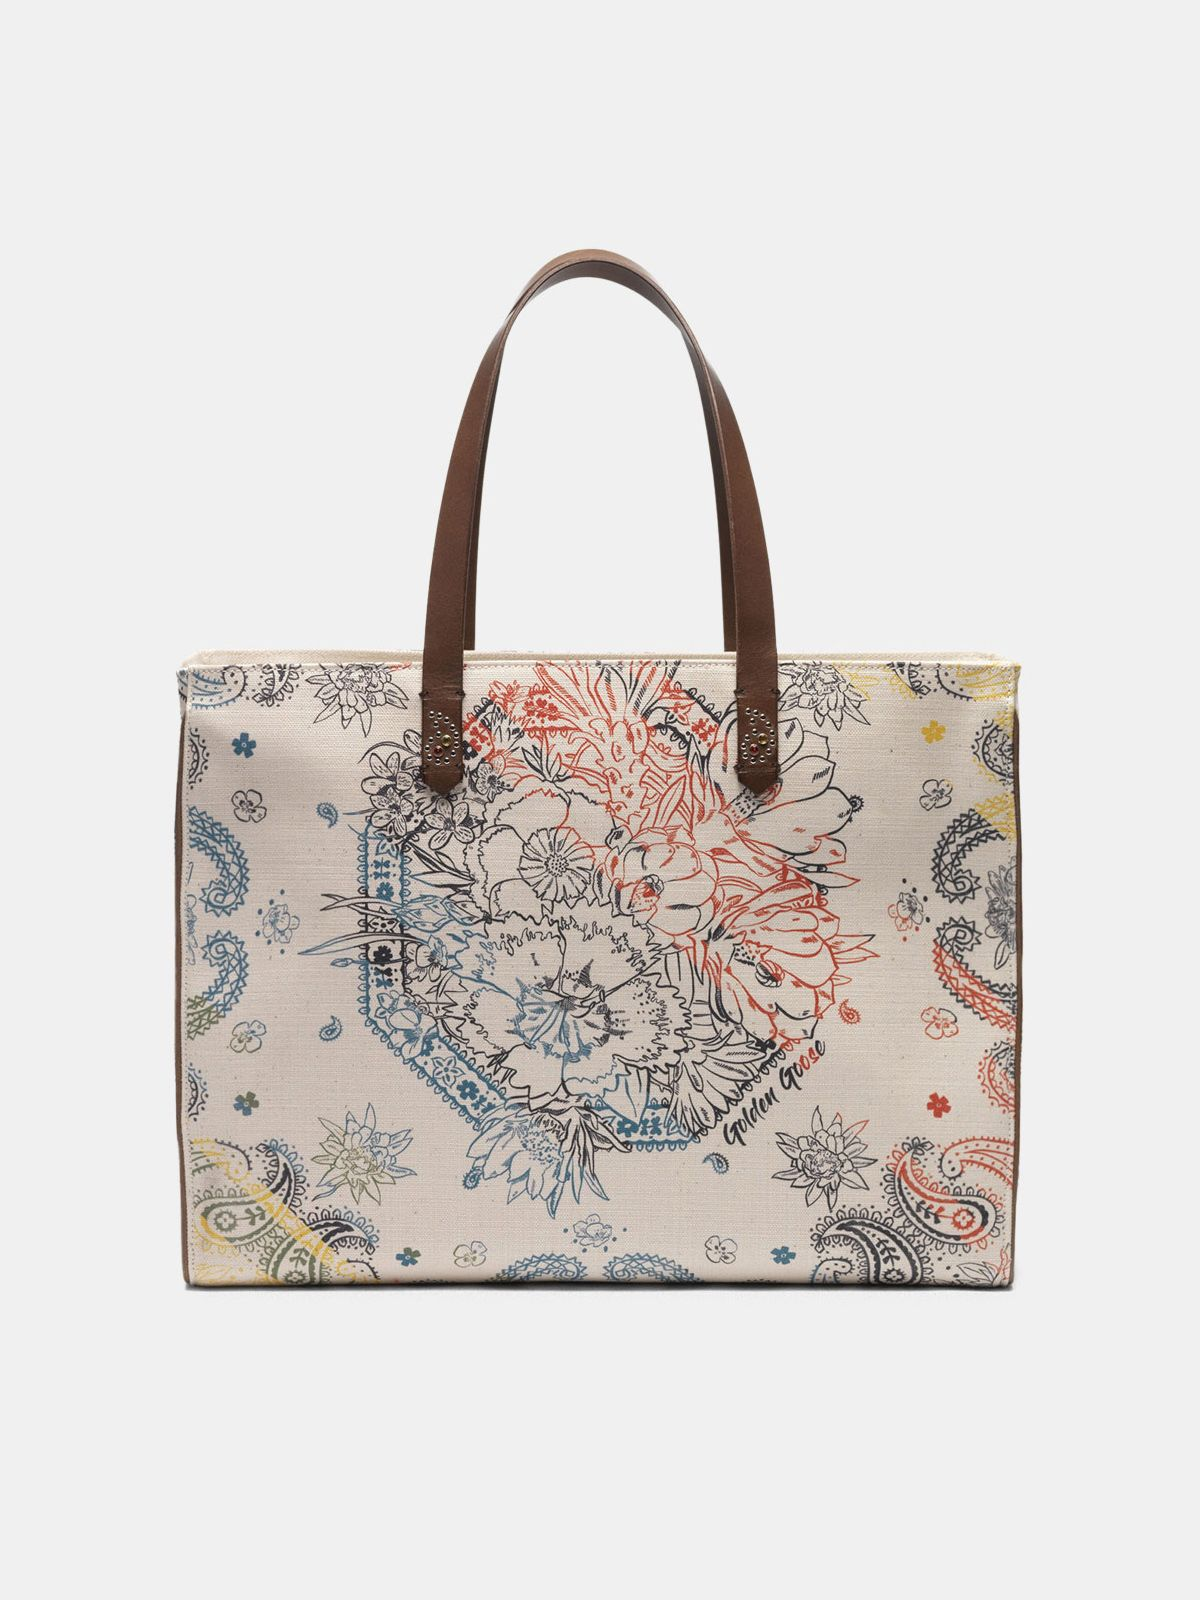 Golden Goose - Borsa California East-West stampa bandana in